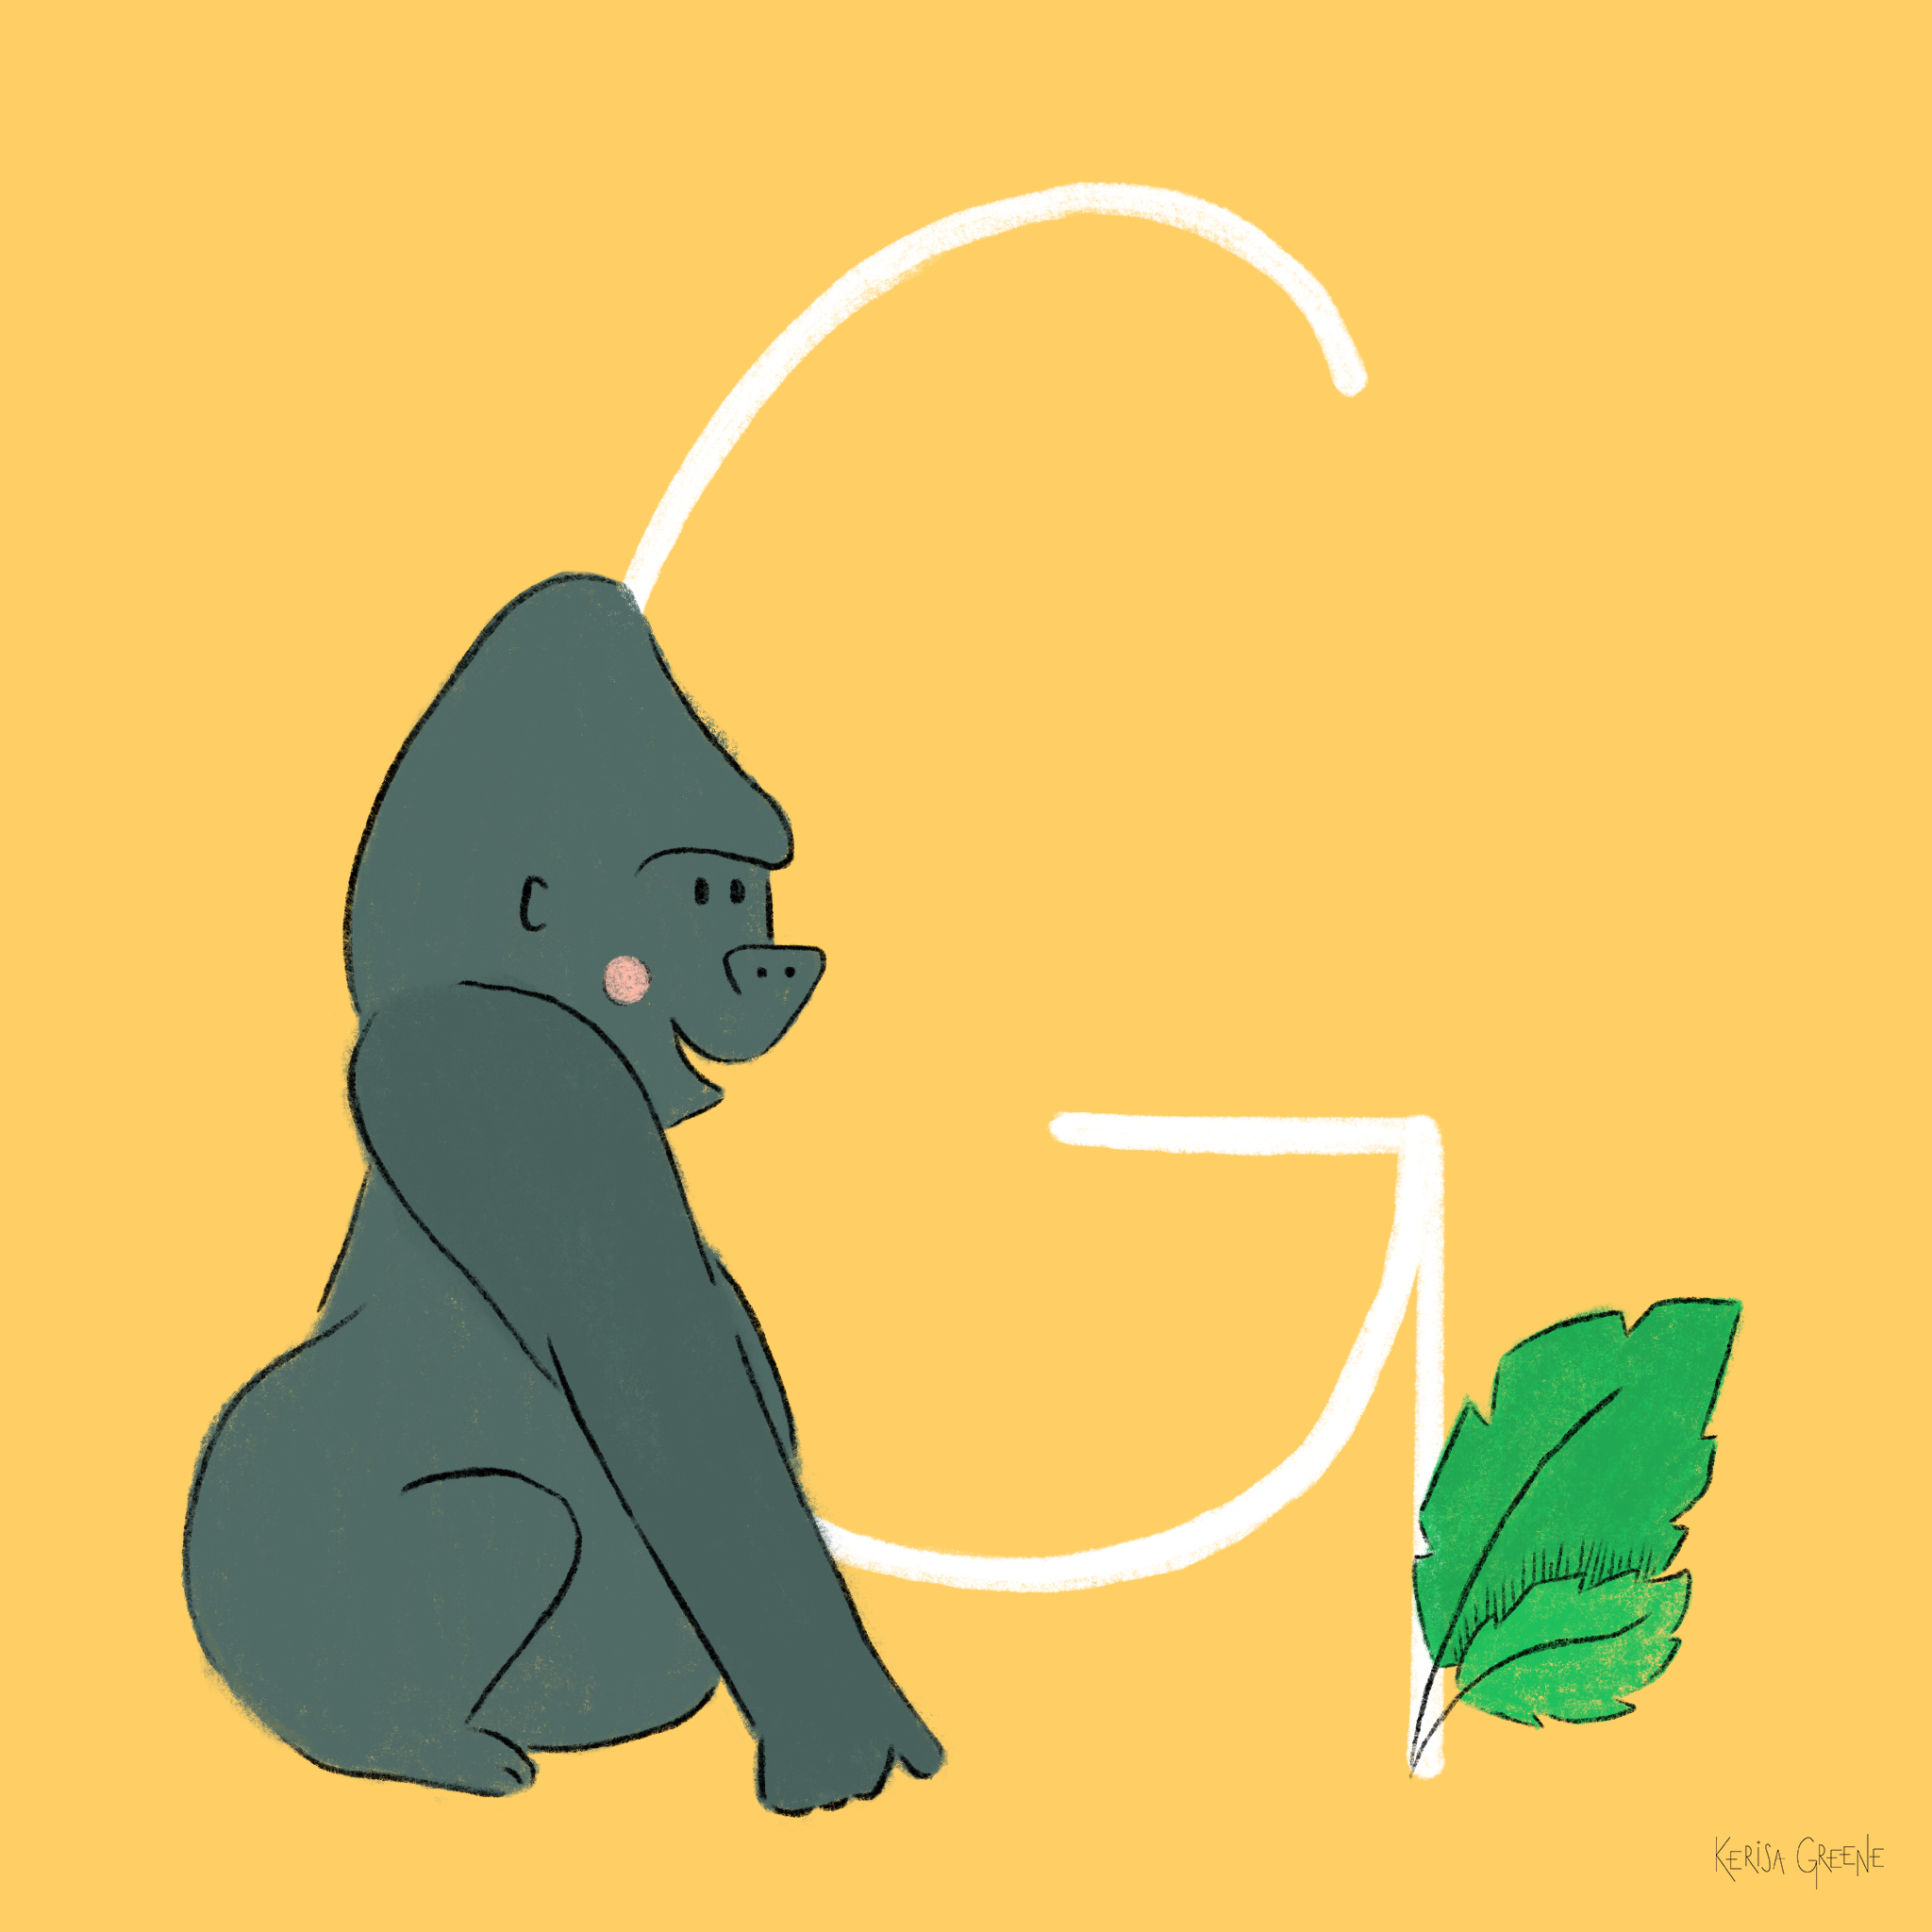 G is for Gorilla   An adult male gorilla will eat around 50 pounds of food a day!